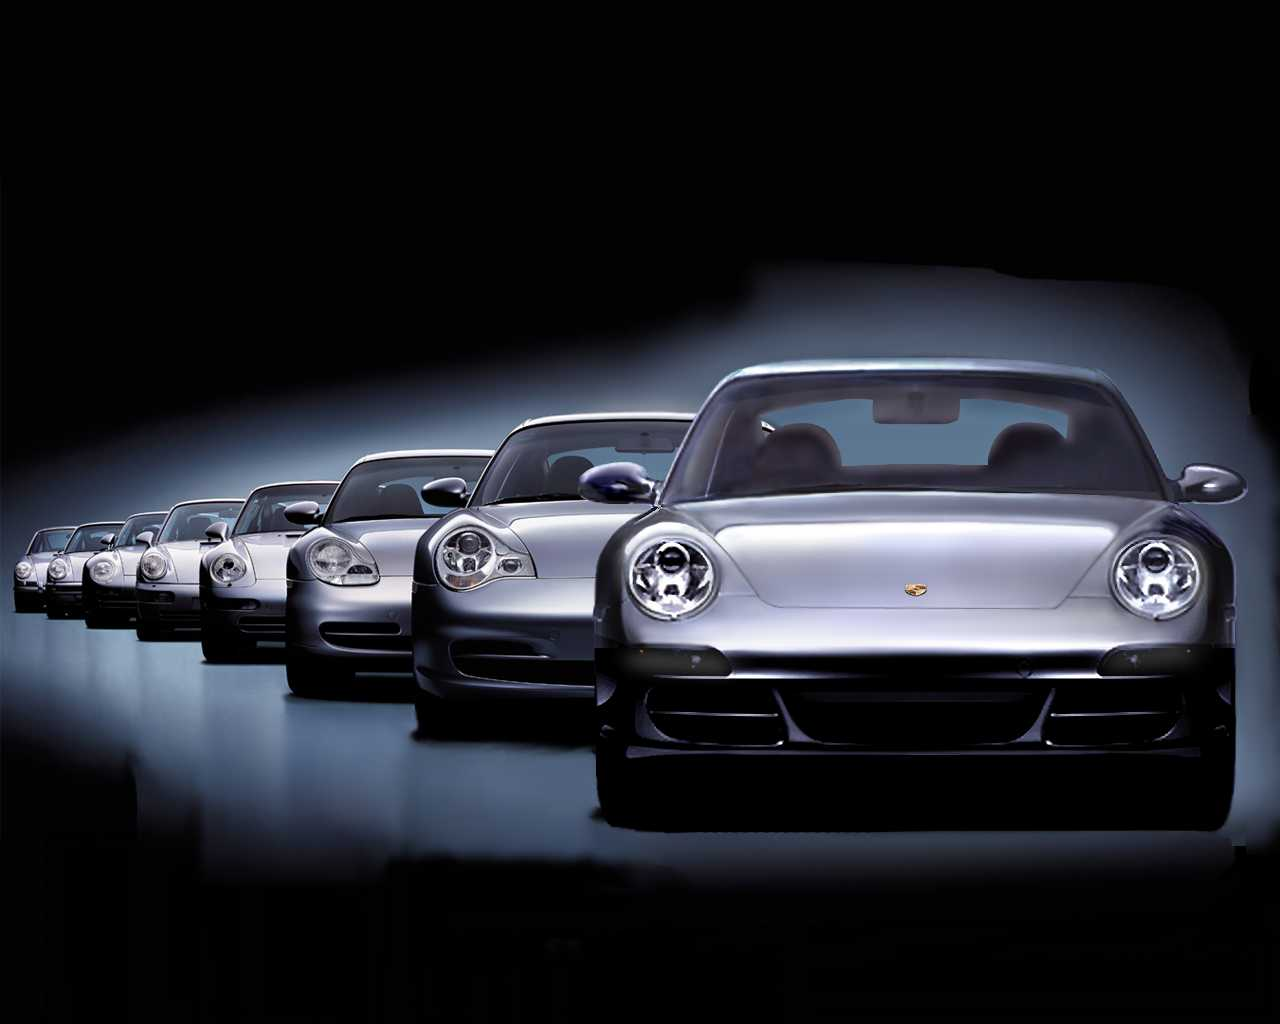 In Defense of the Porsche 911